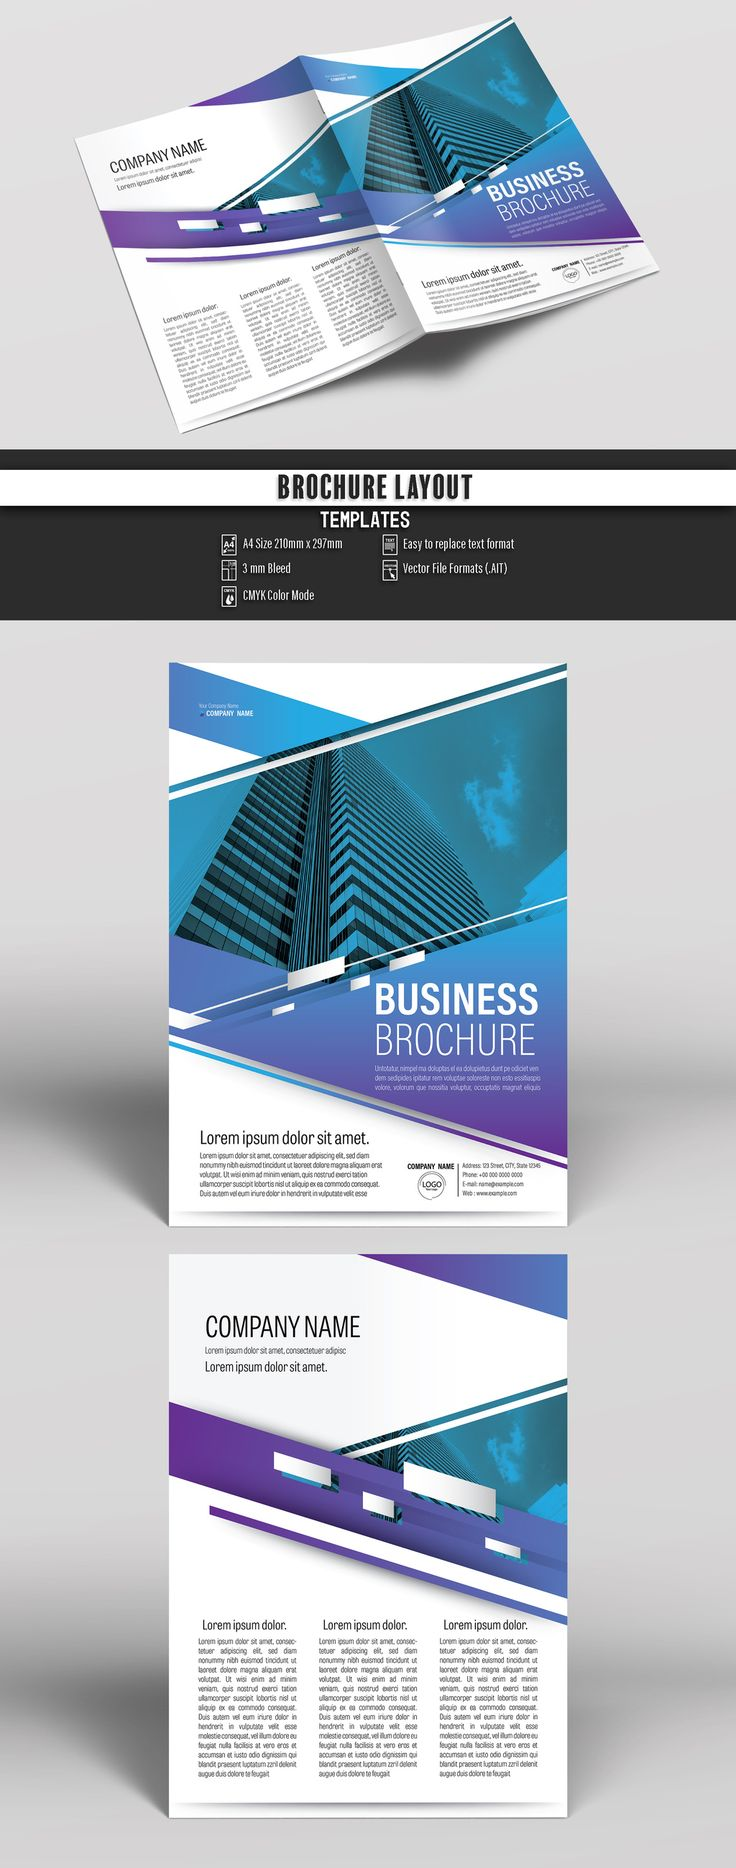 proposal report template%0A Buy this stock template and explore similar templates at Adobe Stock   Brochure  Business  Proposal  Booklet  Flyer  Template  Design  Layout   Cover  Book